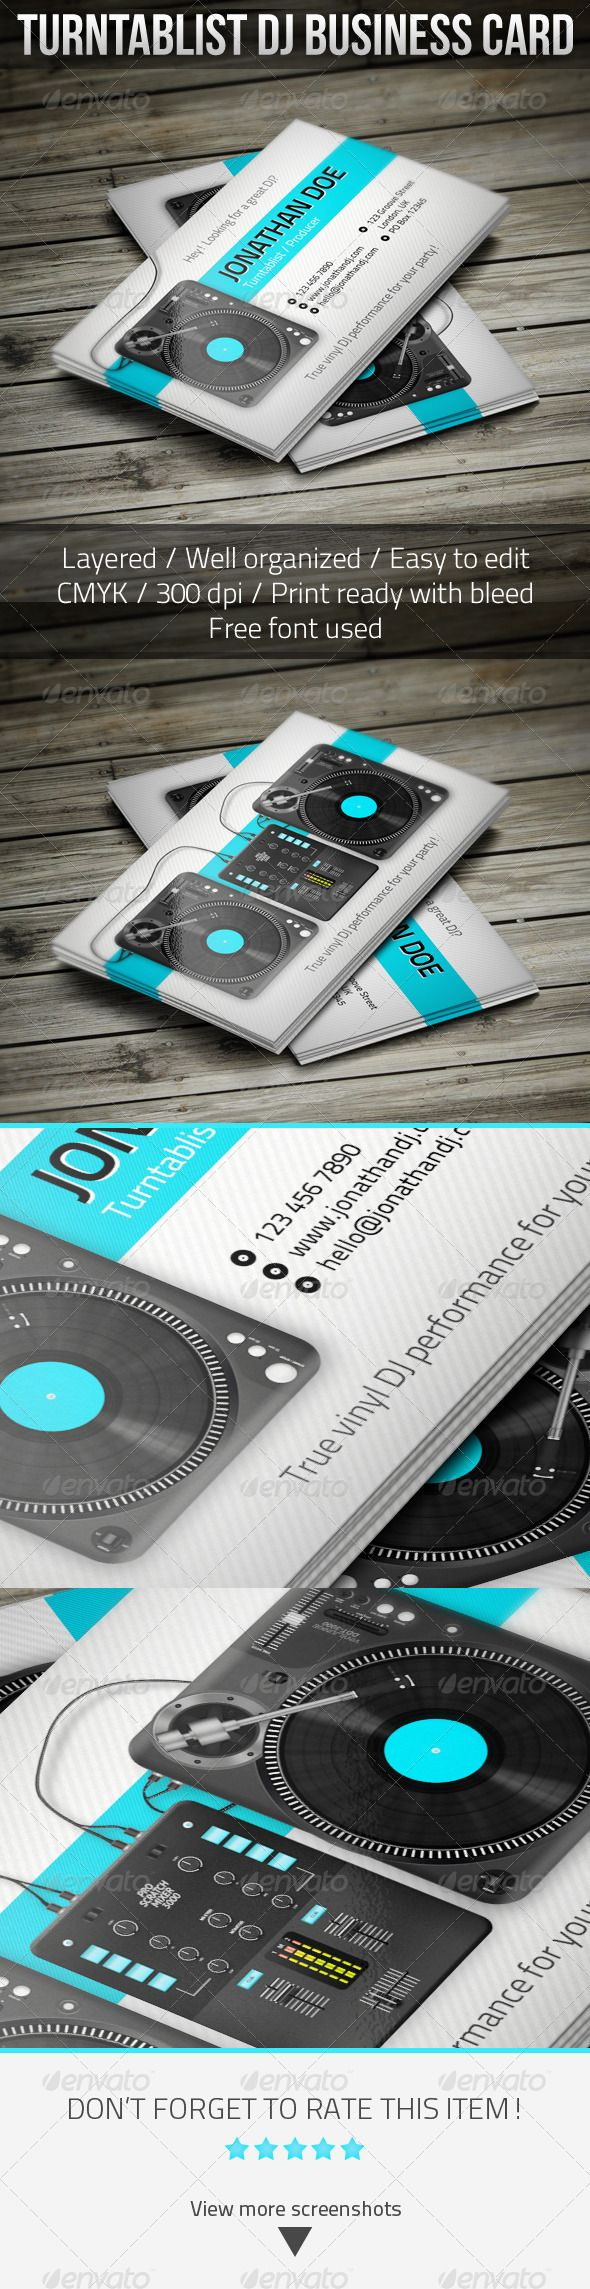 Best 25+ Dj business cards ideas on Pinterest | Free business card ...